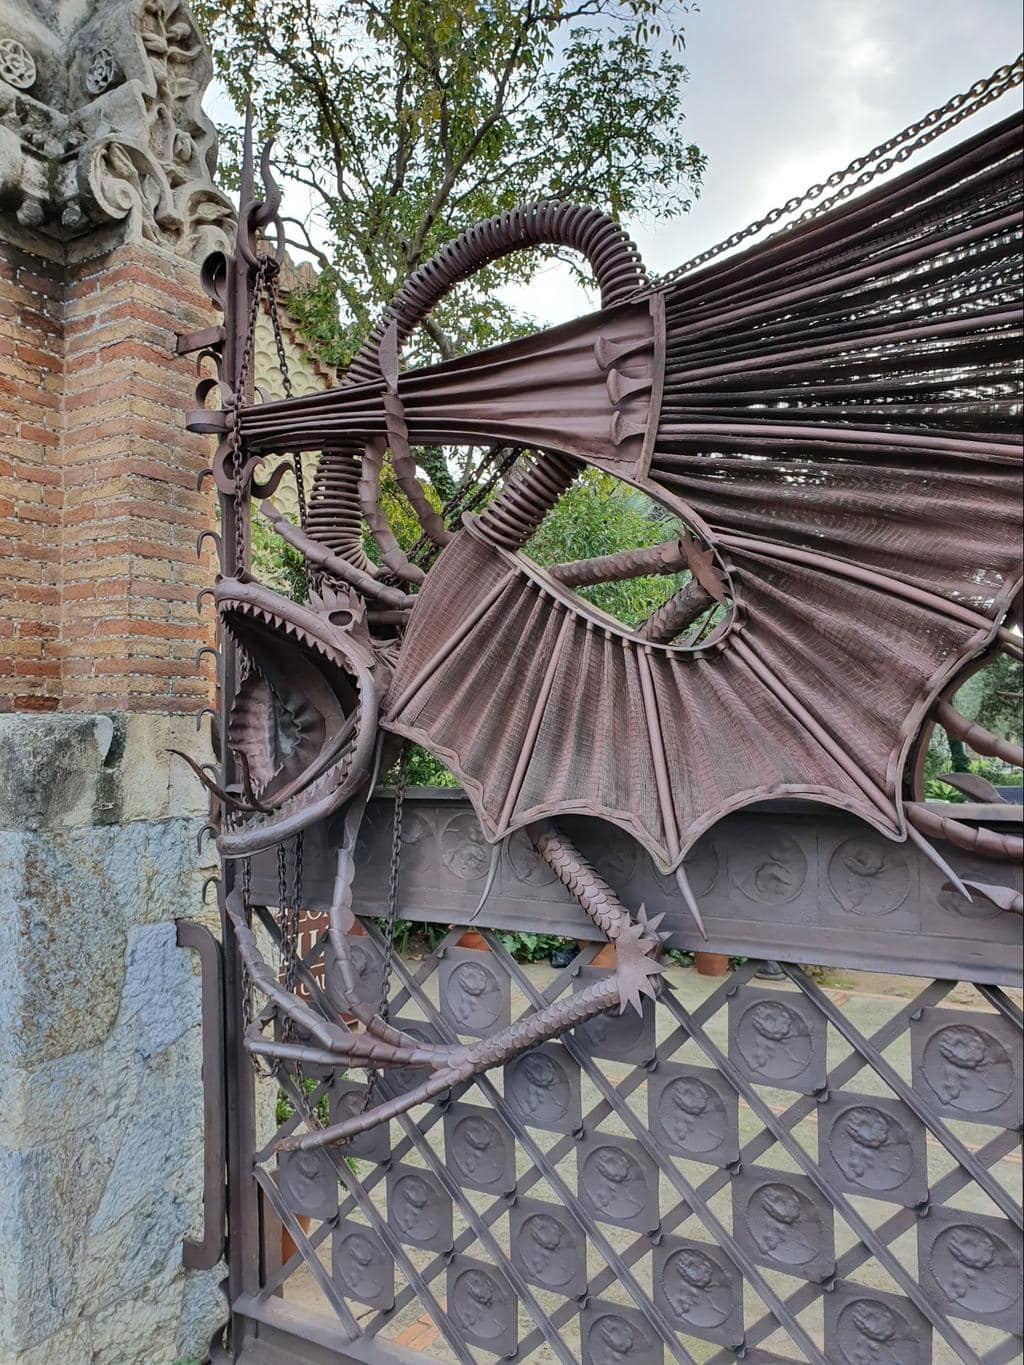 Detail of the Guell Pavilion dragon gate